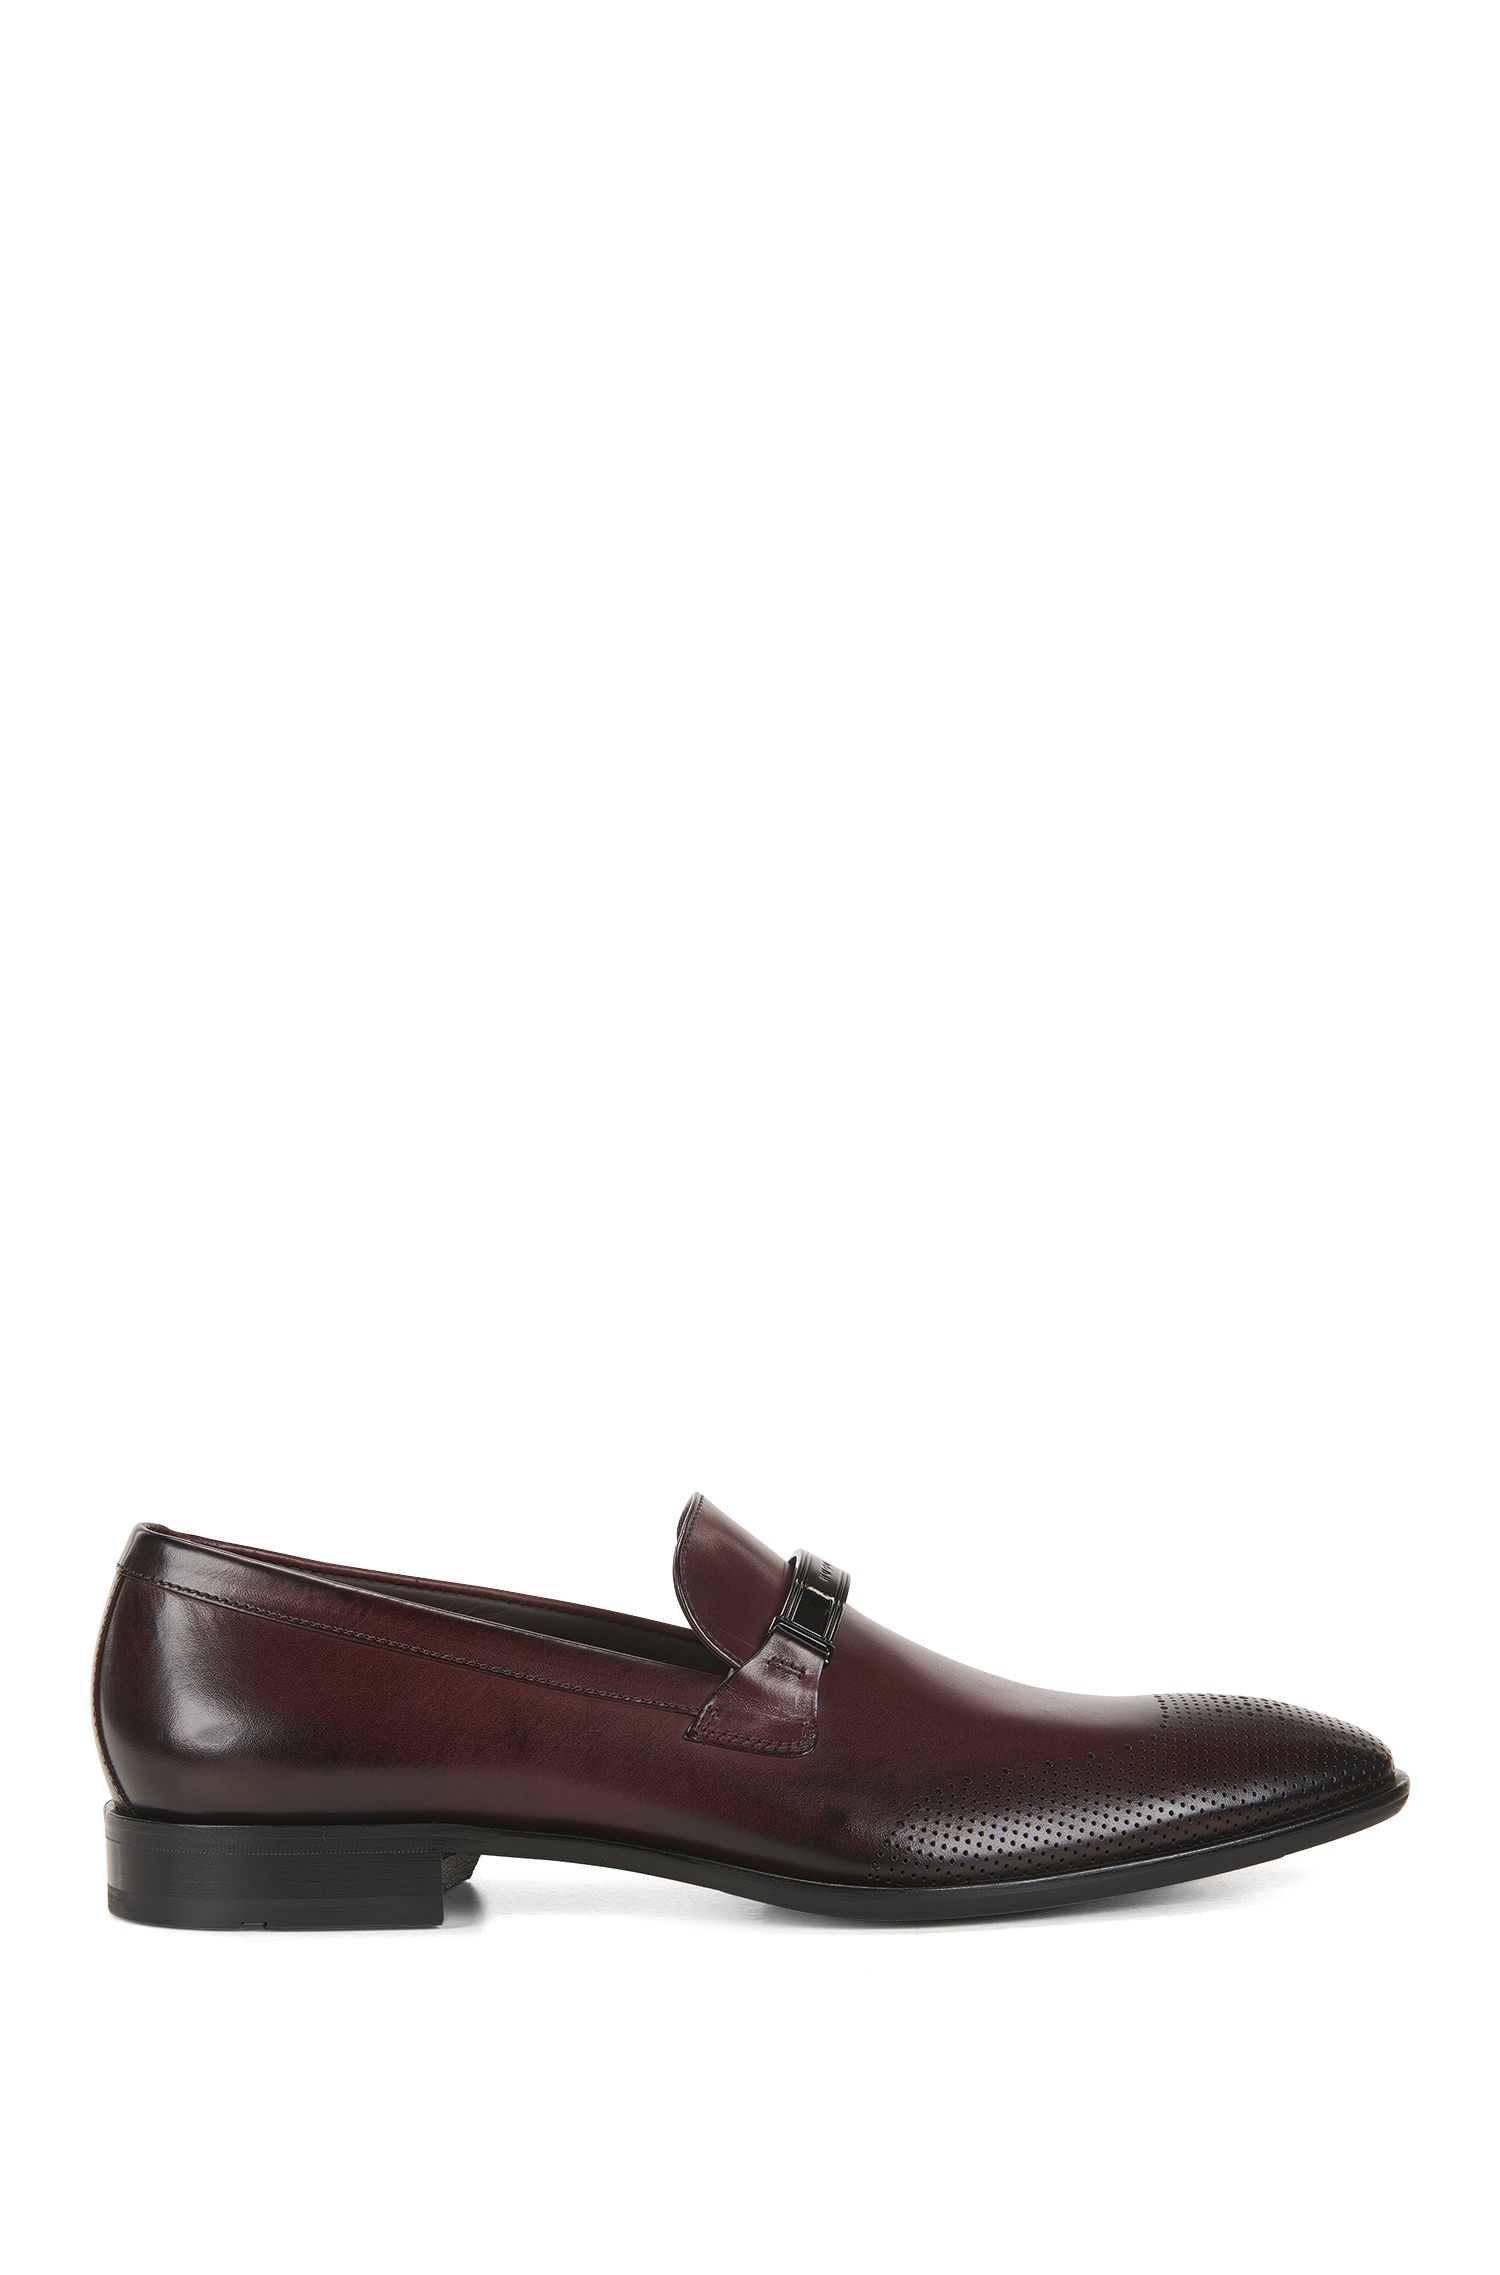 Leather loafers with laser-cut details